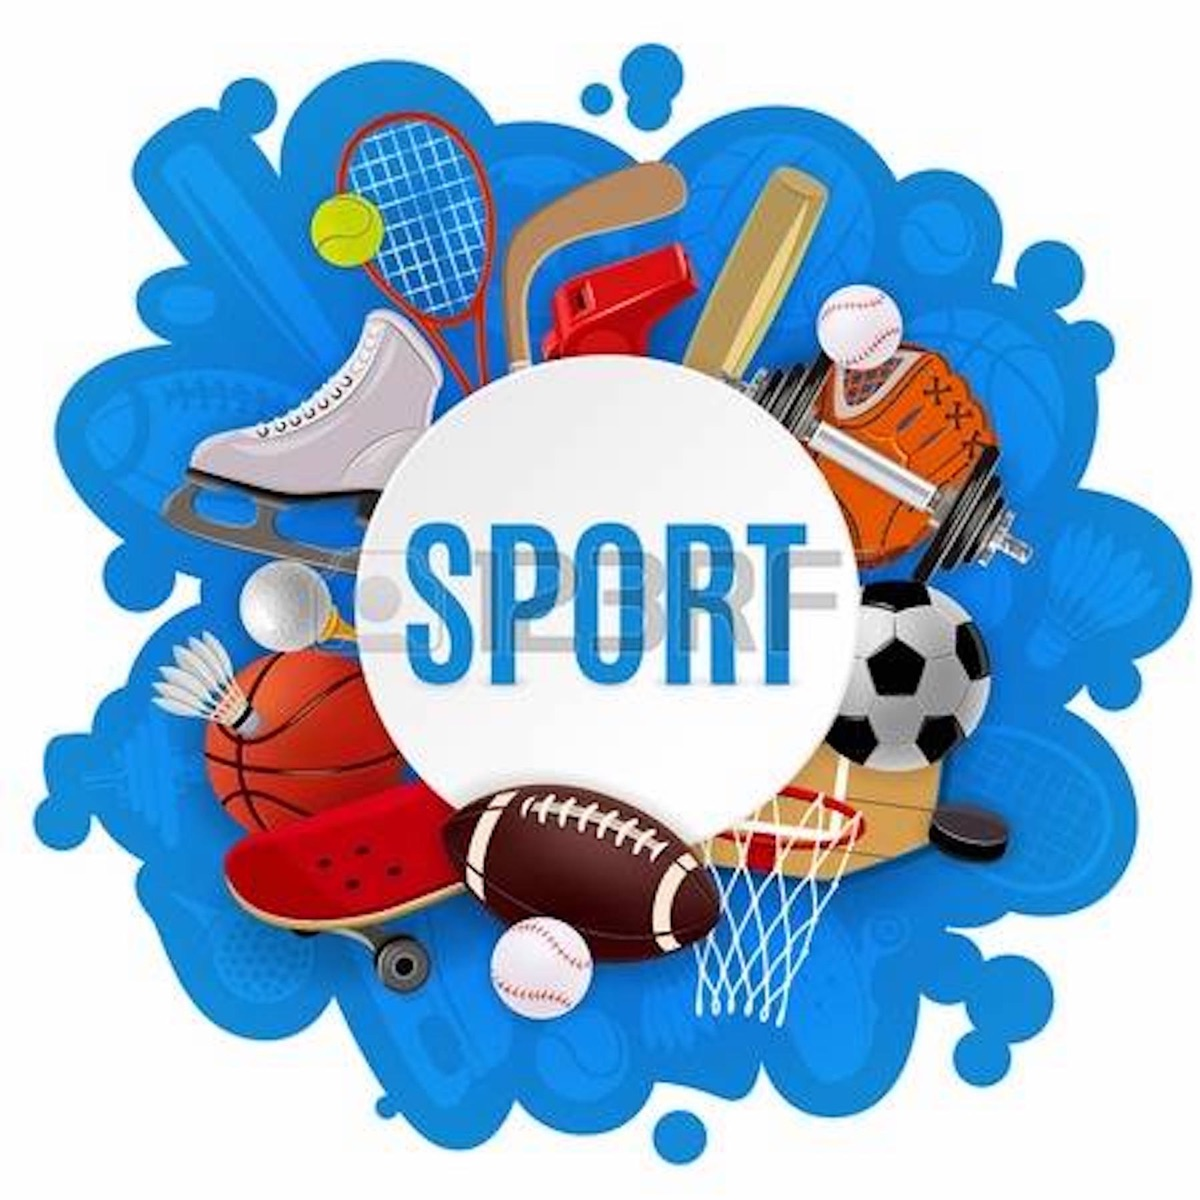 Sport Thought